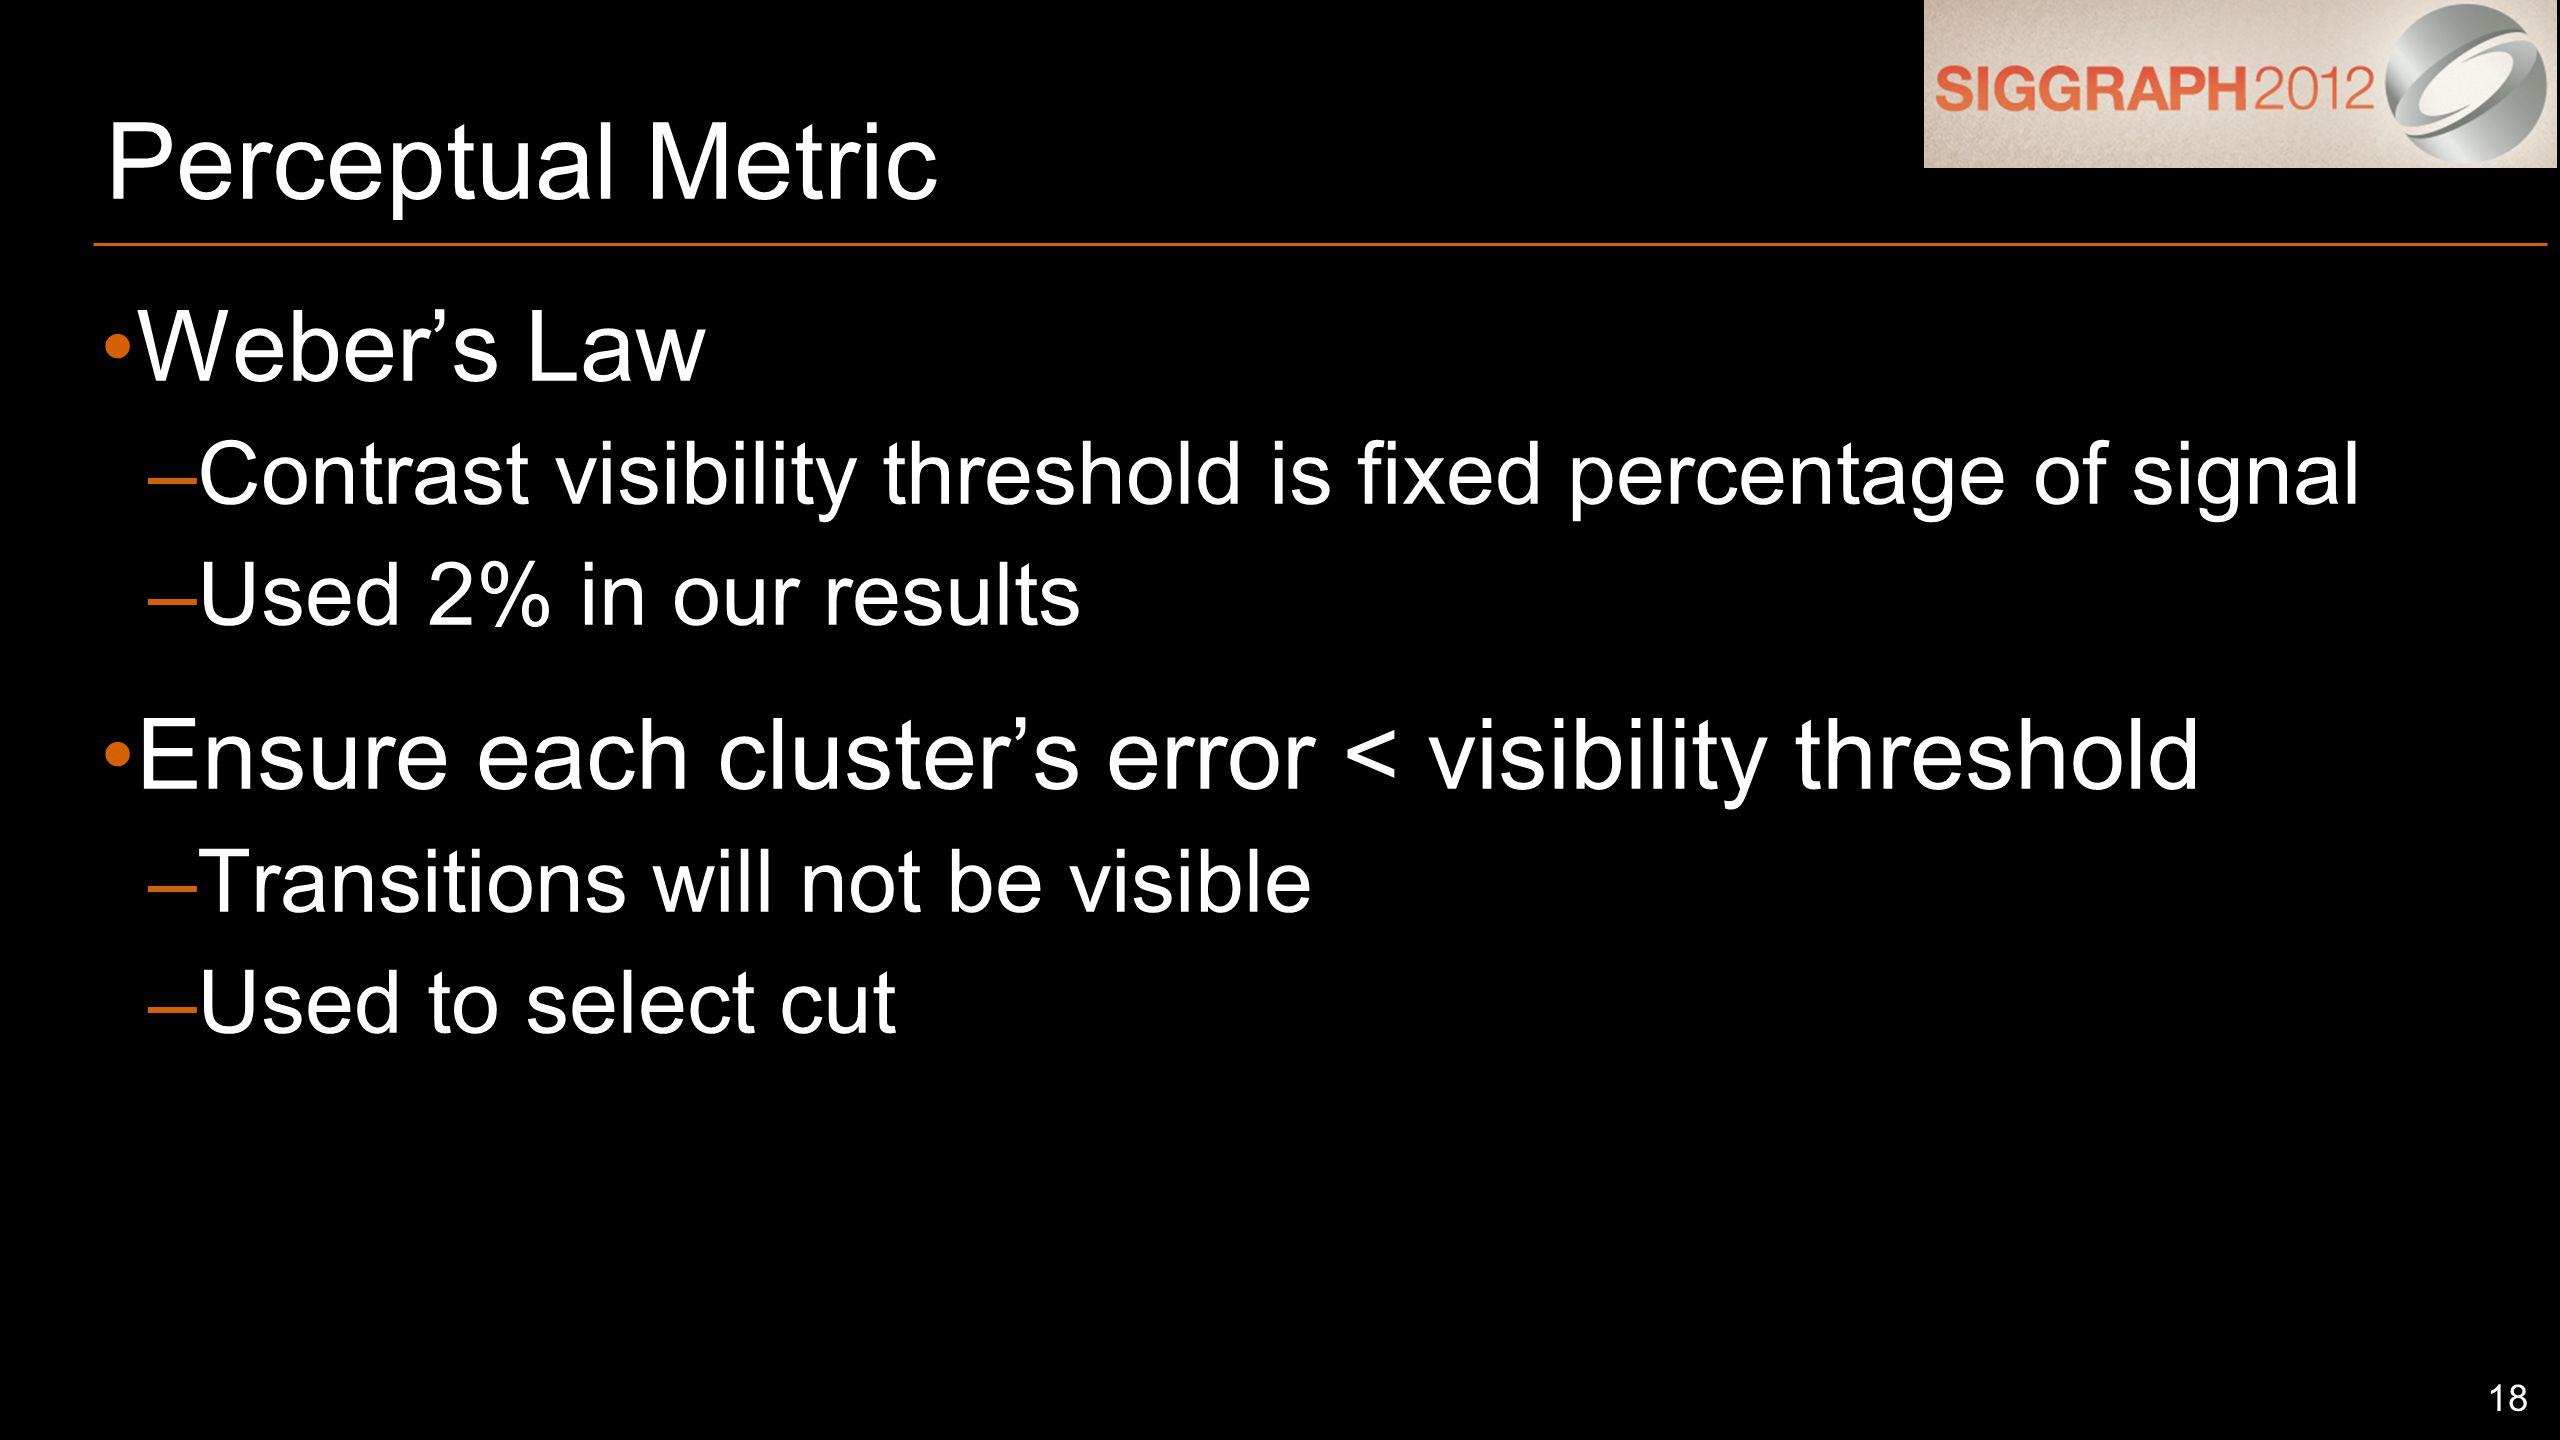 18 Perceptual Metric Weber's Law –Contrast visibility threshold is fixed percentage of signal –Used 2% in our results Ensure each cluster's error < visibility threshold –Transitions will not be visible –Used to select cut